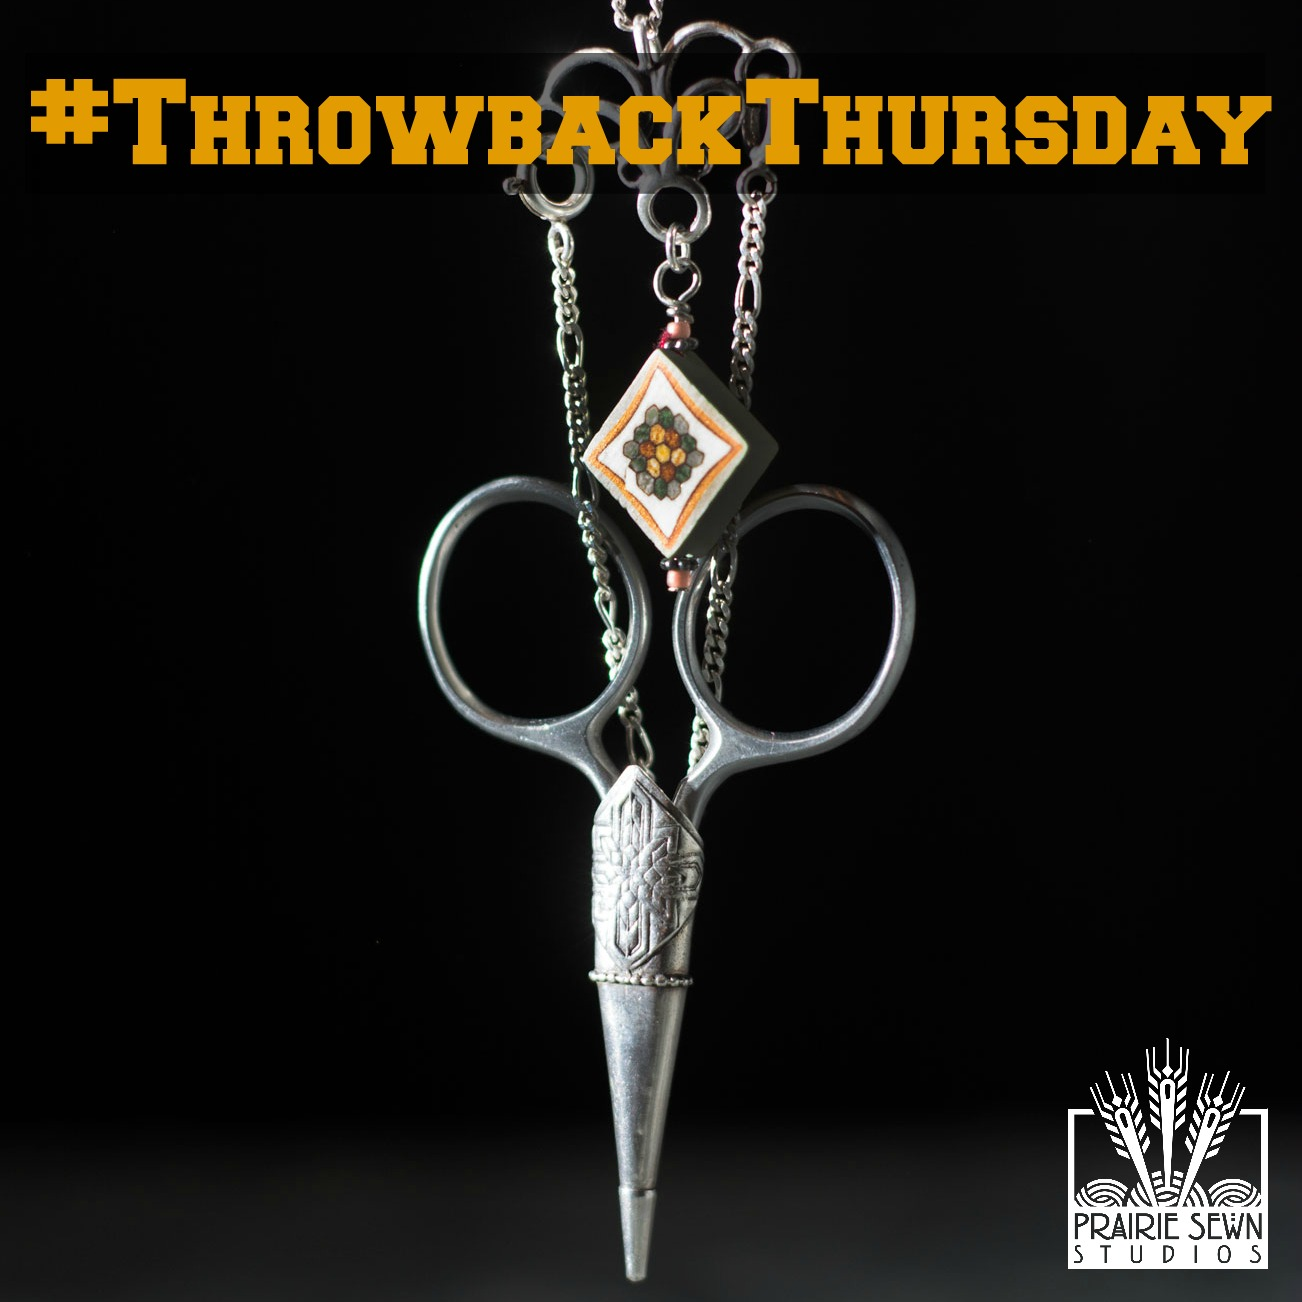 Throwback Thursday-Scissors